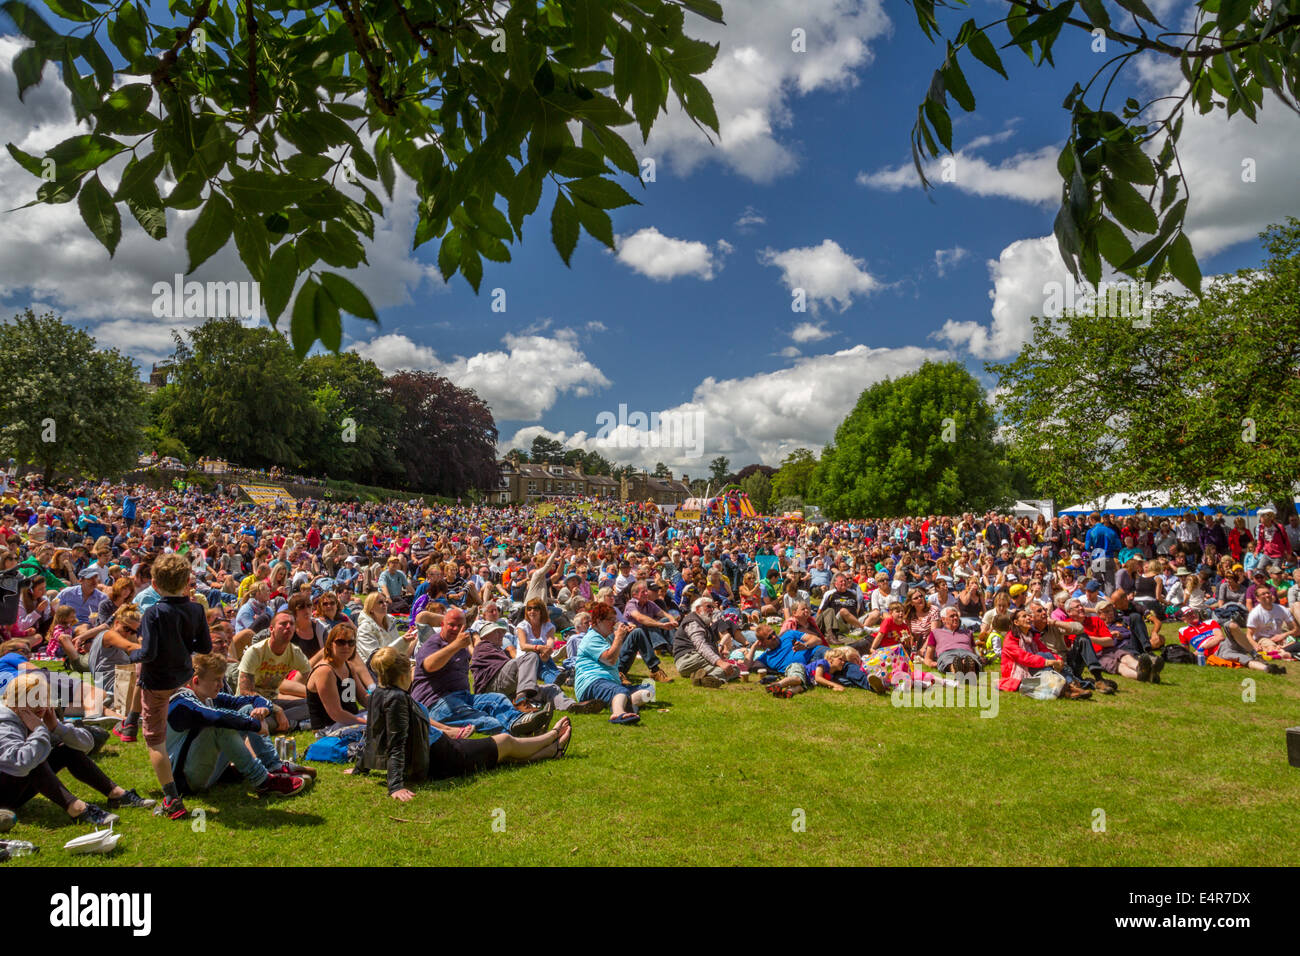 5th July 2014 - Crowds in Ilkley enjoy blue skies in summery weather outside watching the Tour de France Grand depart - Stock Image